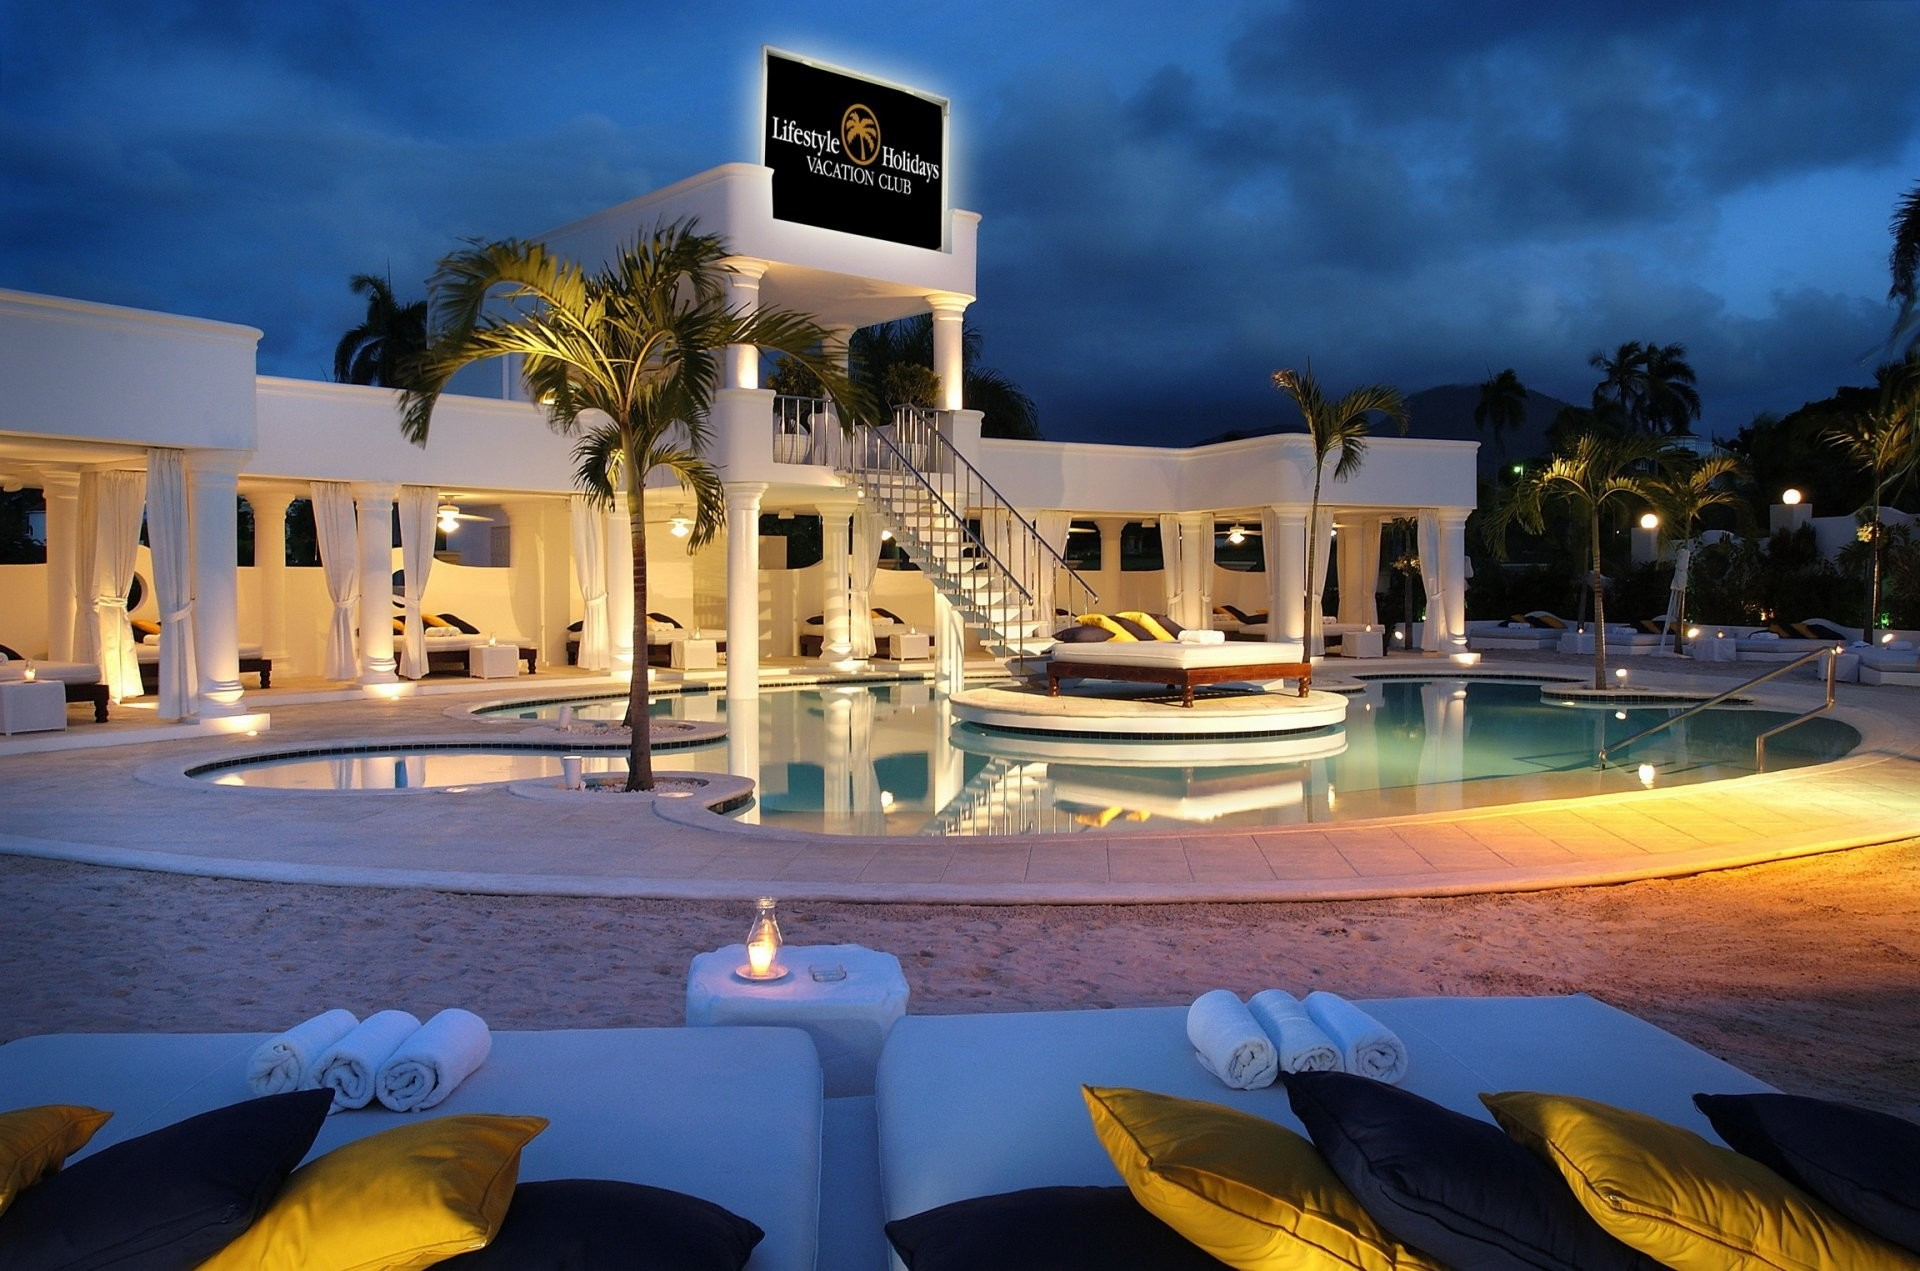 resort club dominican republic building column pools swimming pool beds  pillow architecture night palm .